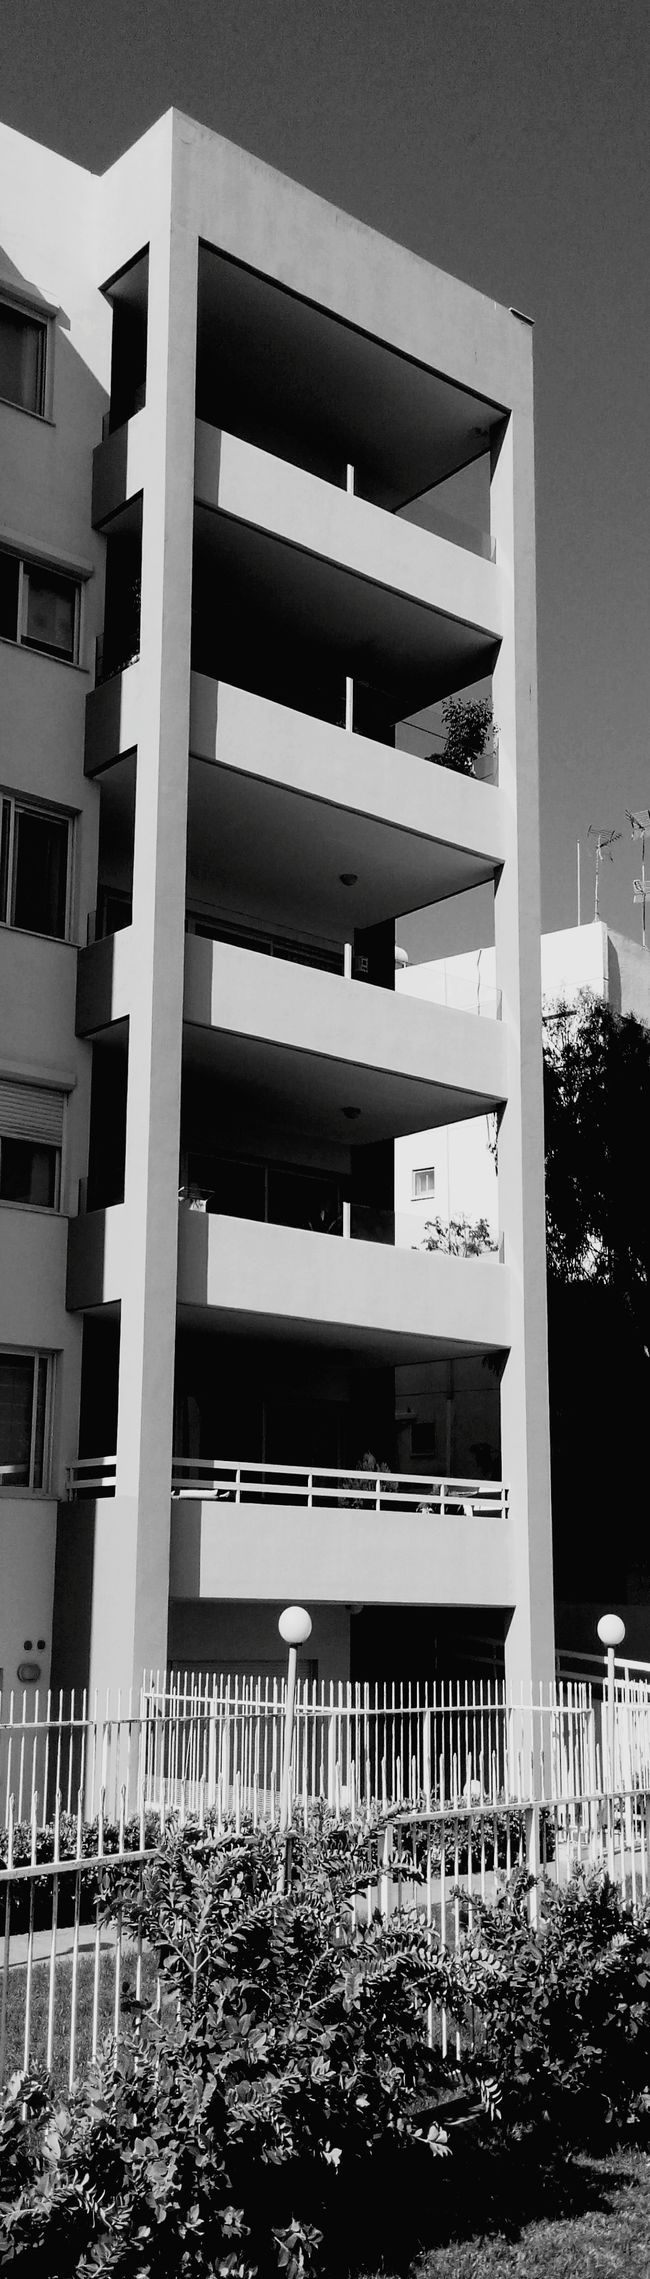 Scrollup my Panoramic Urban Landscape in Monochrome Blackandwhite and enjoy Amazing View of Architectural Detail of that Building • Eye4black&white  and Eye4photography